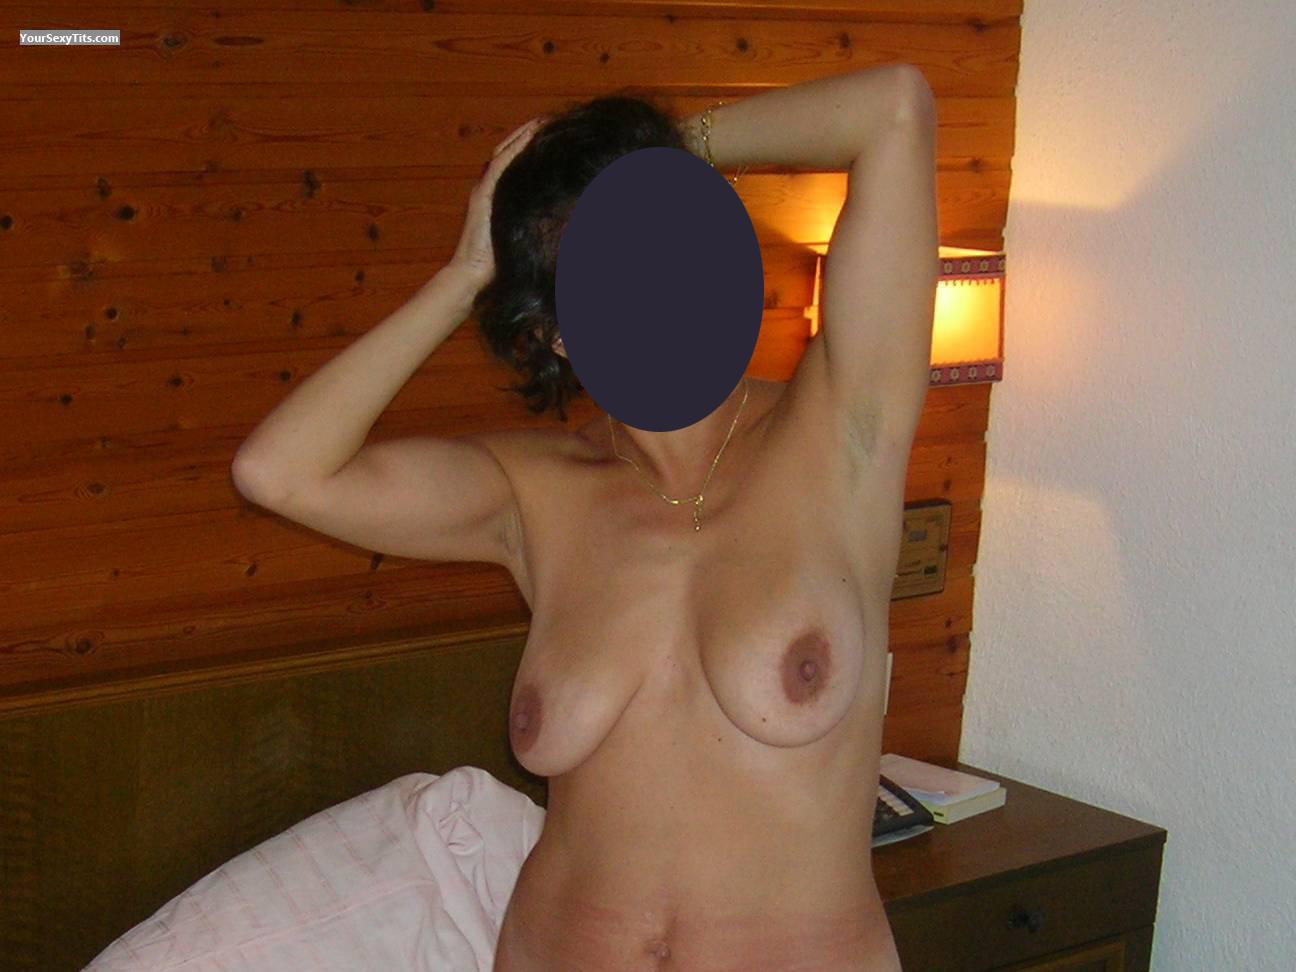 Medium Tits Of My Wife Angela